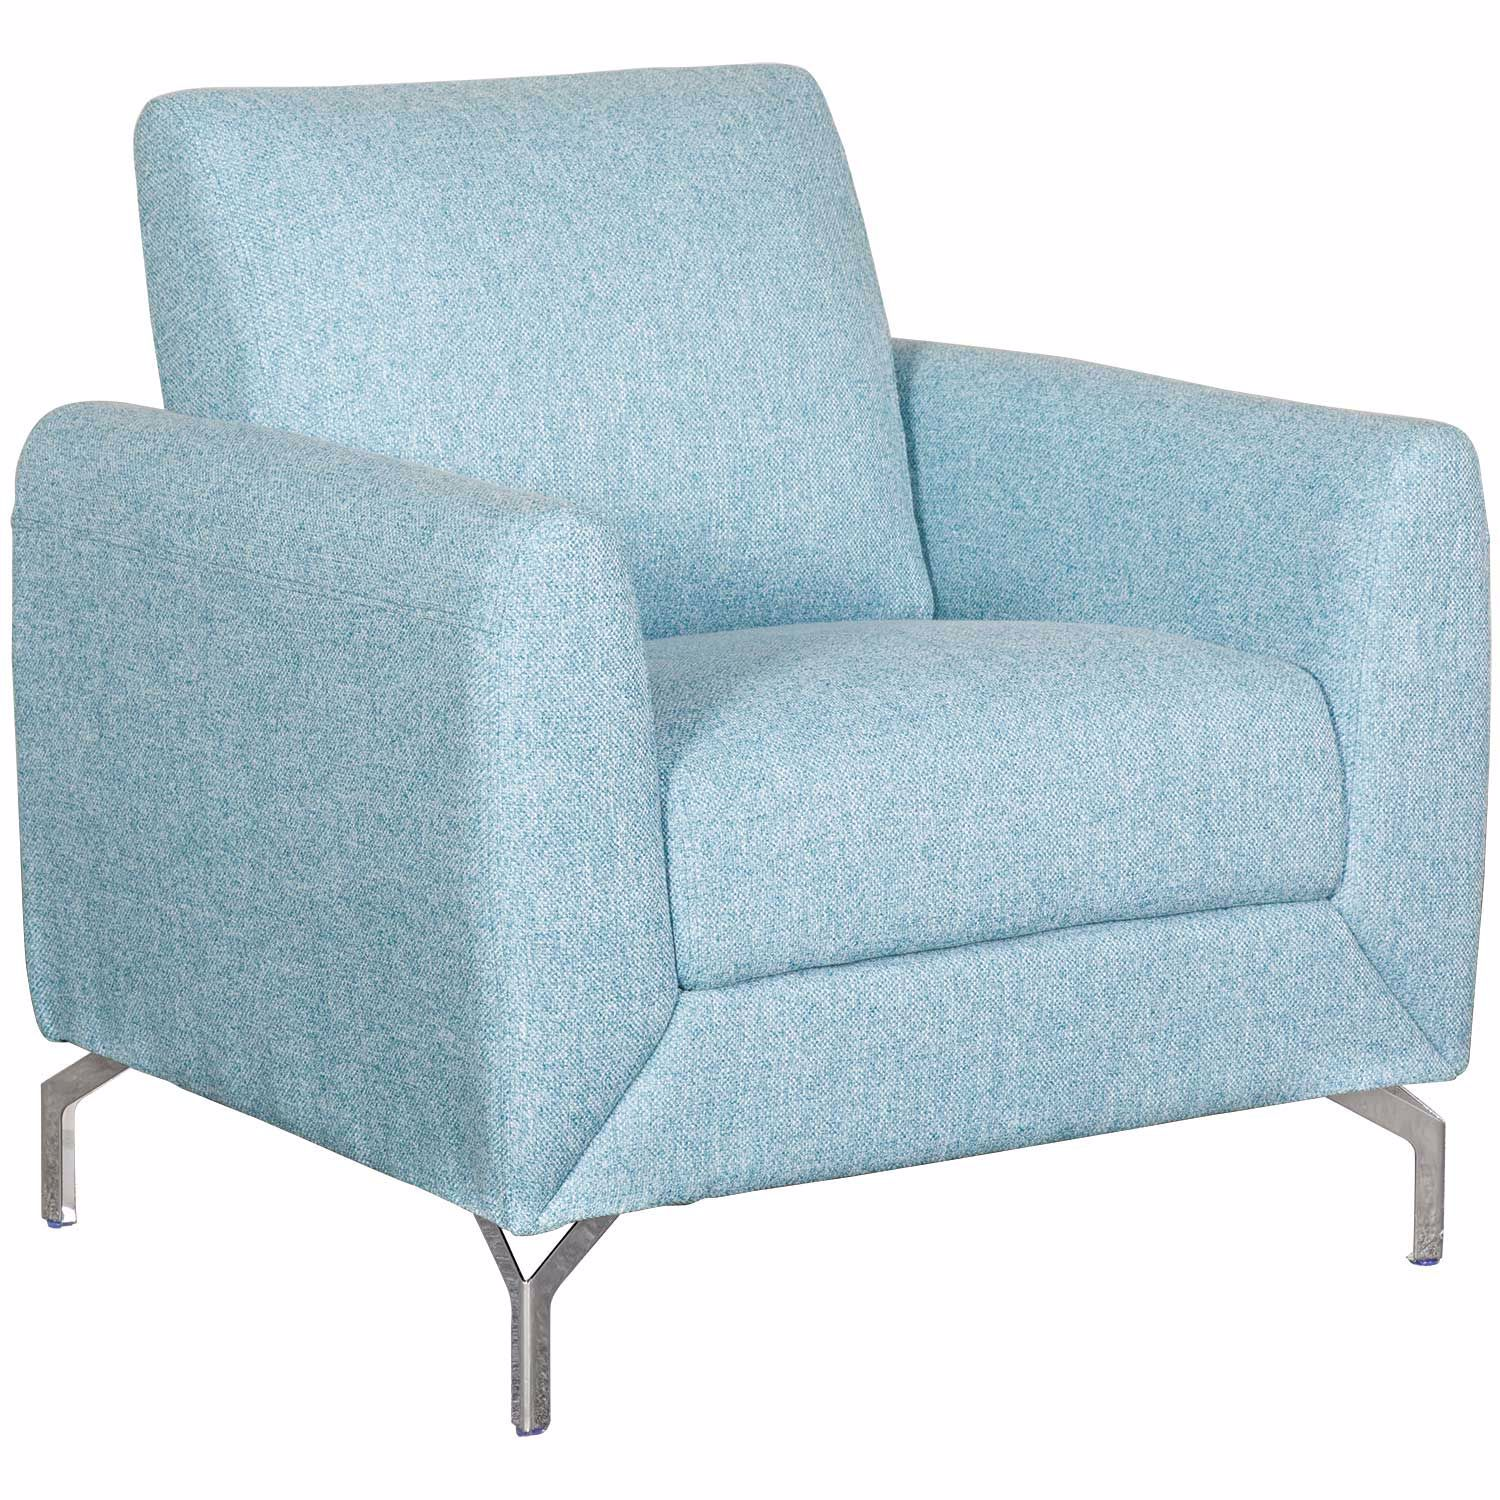 Picture of Mia Blue Chair